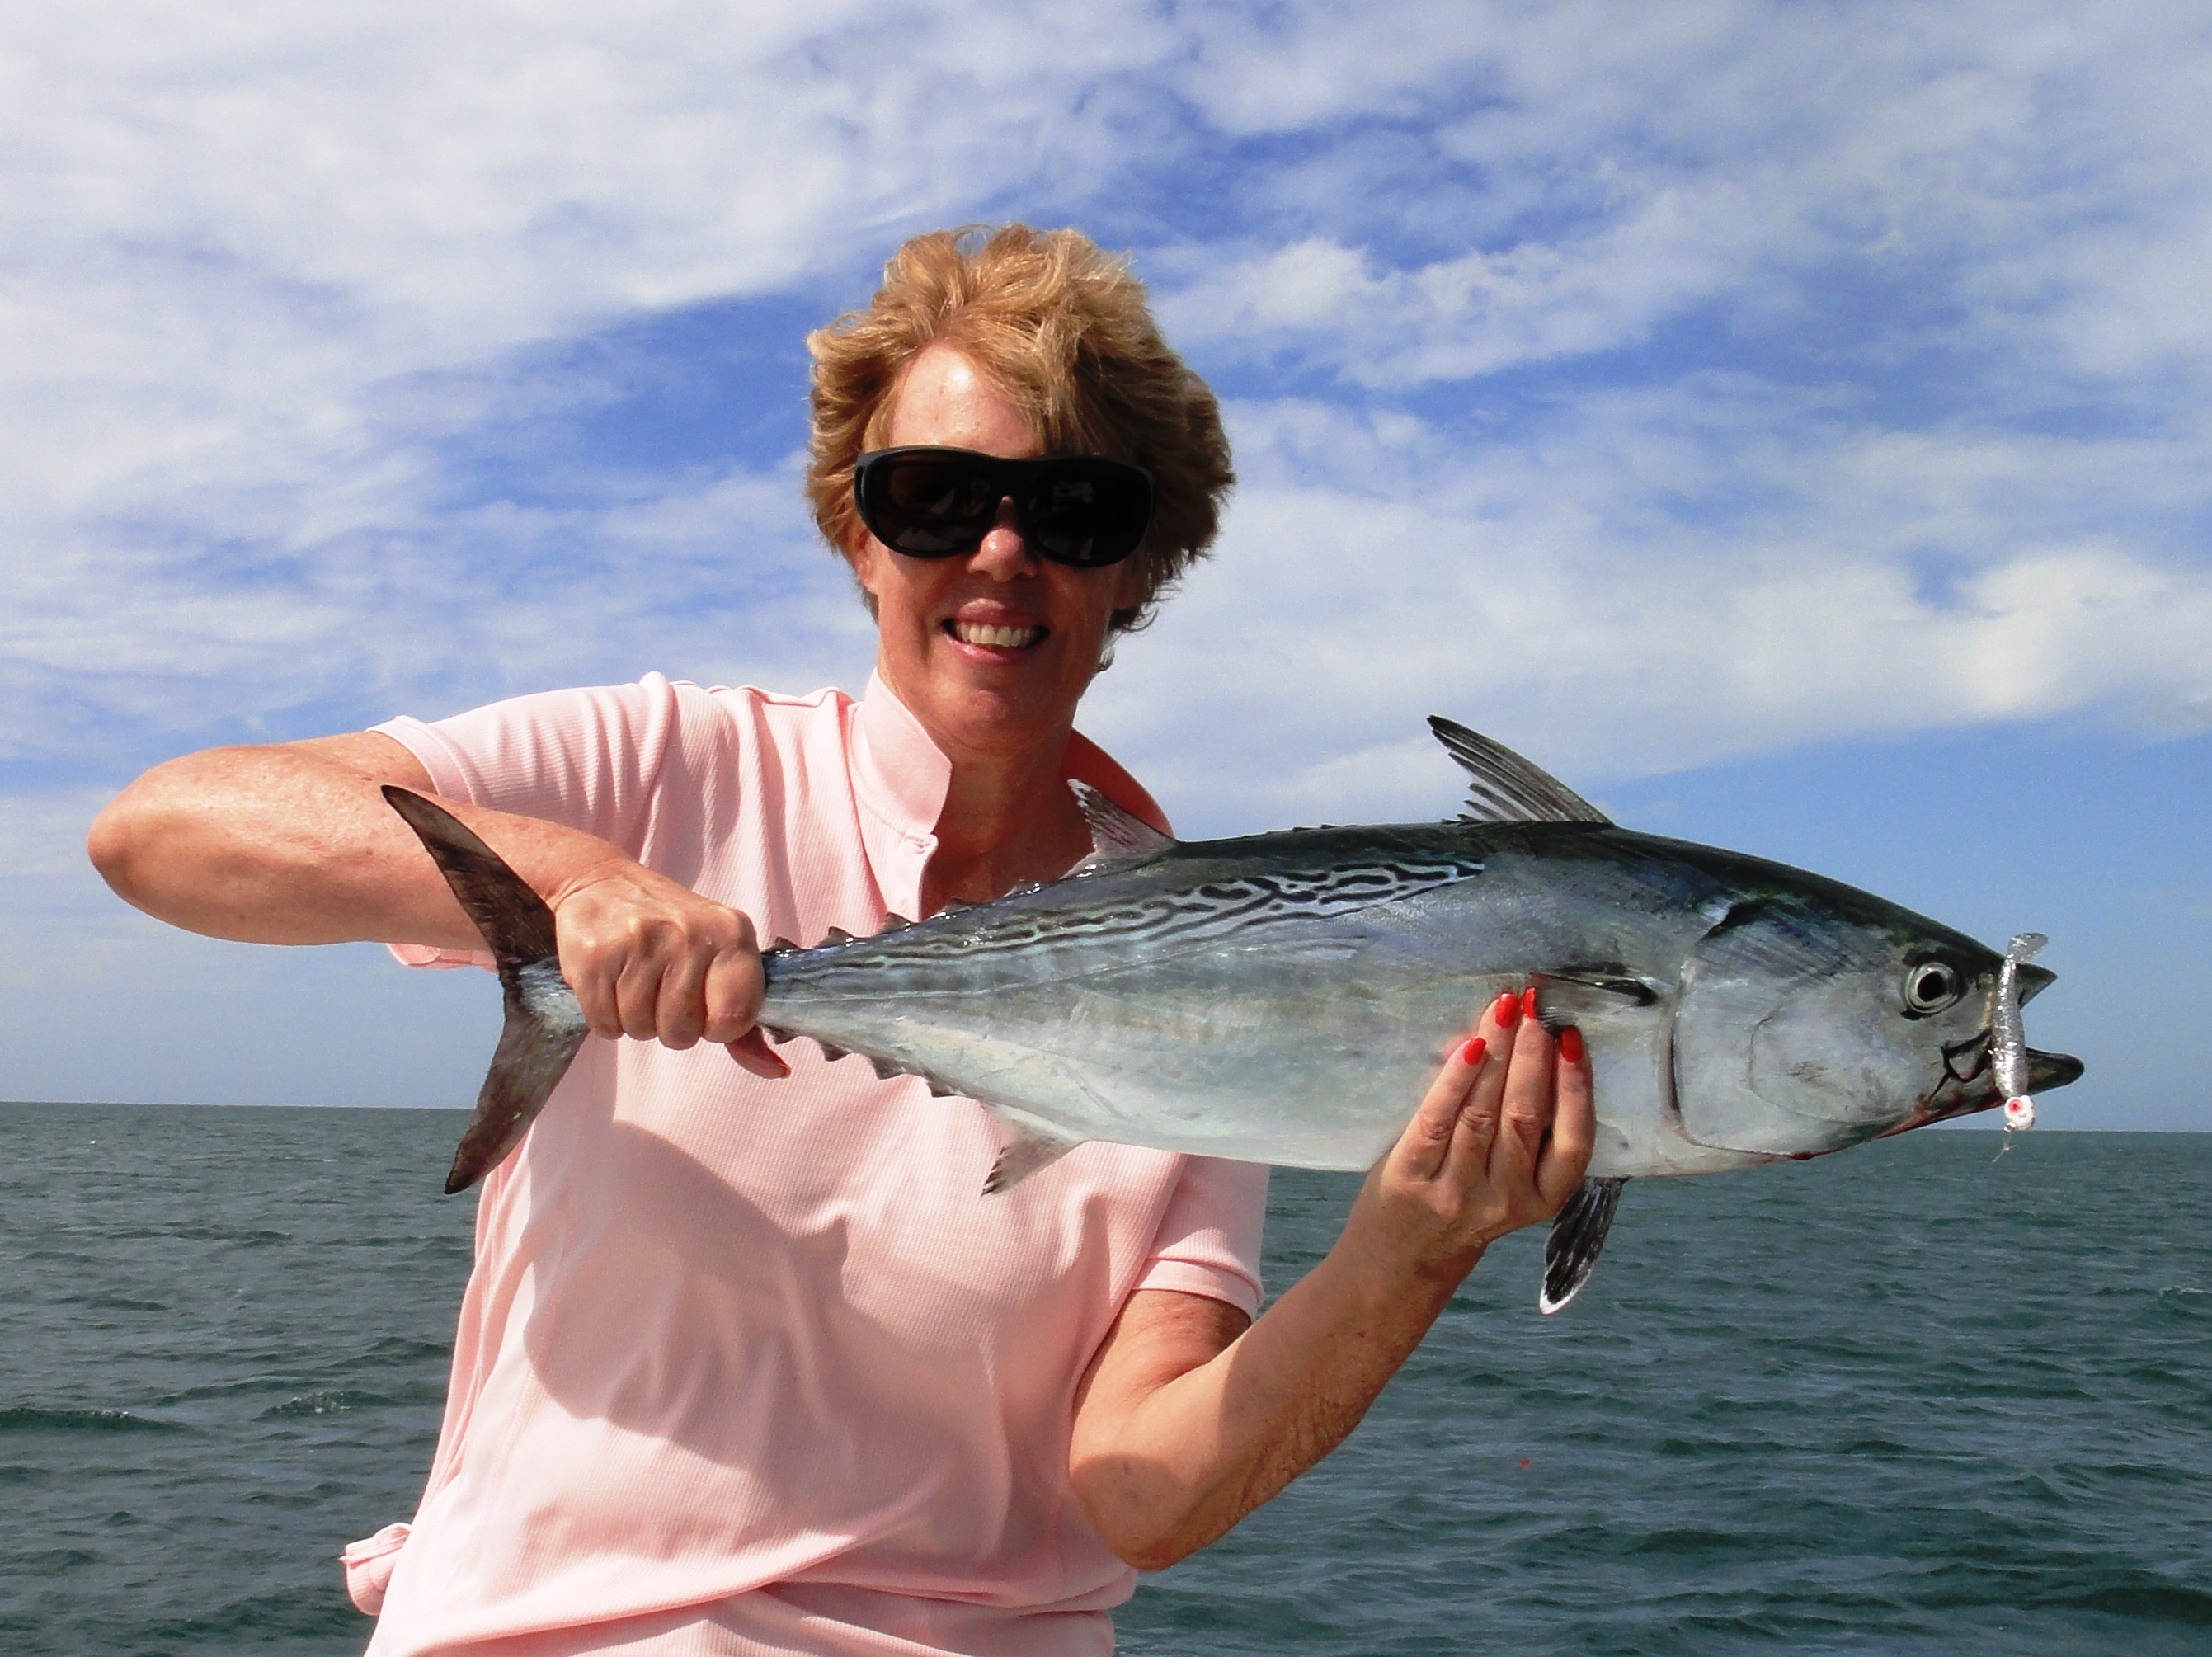 Weekly fishing report 11 09 2011 sarasota fishing charters for Sarasota fishing charters